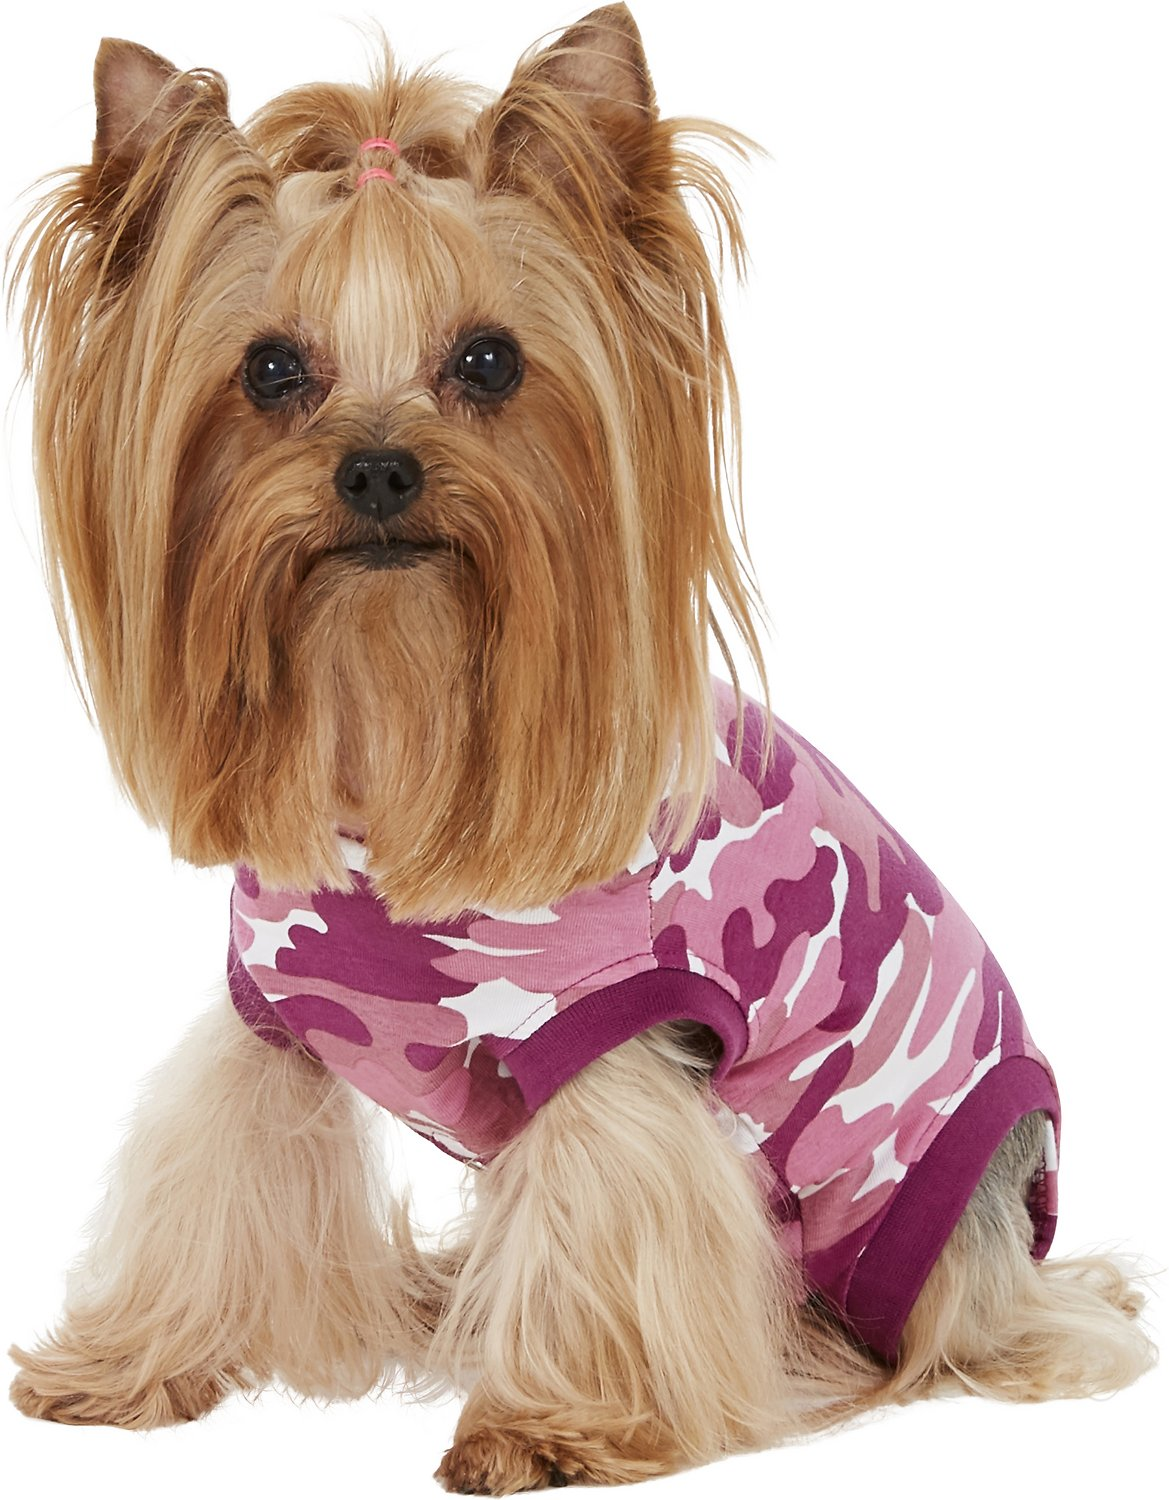 Purple Camo Dog Shirt - 4 Sizes Available - Guaranteed to fit - Love it or send it back :o